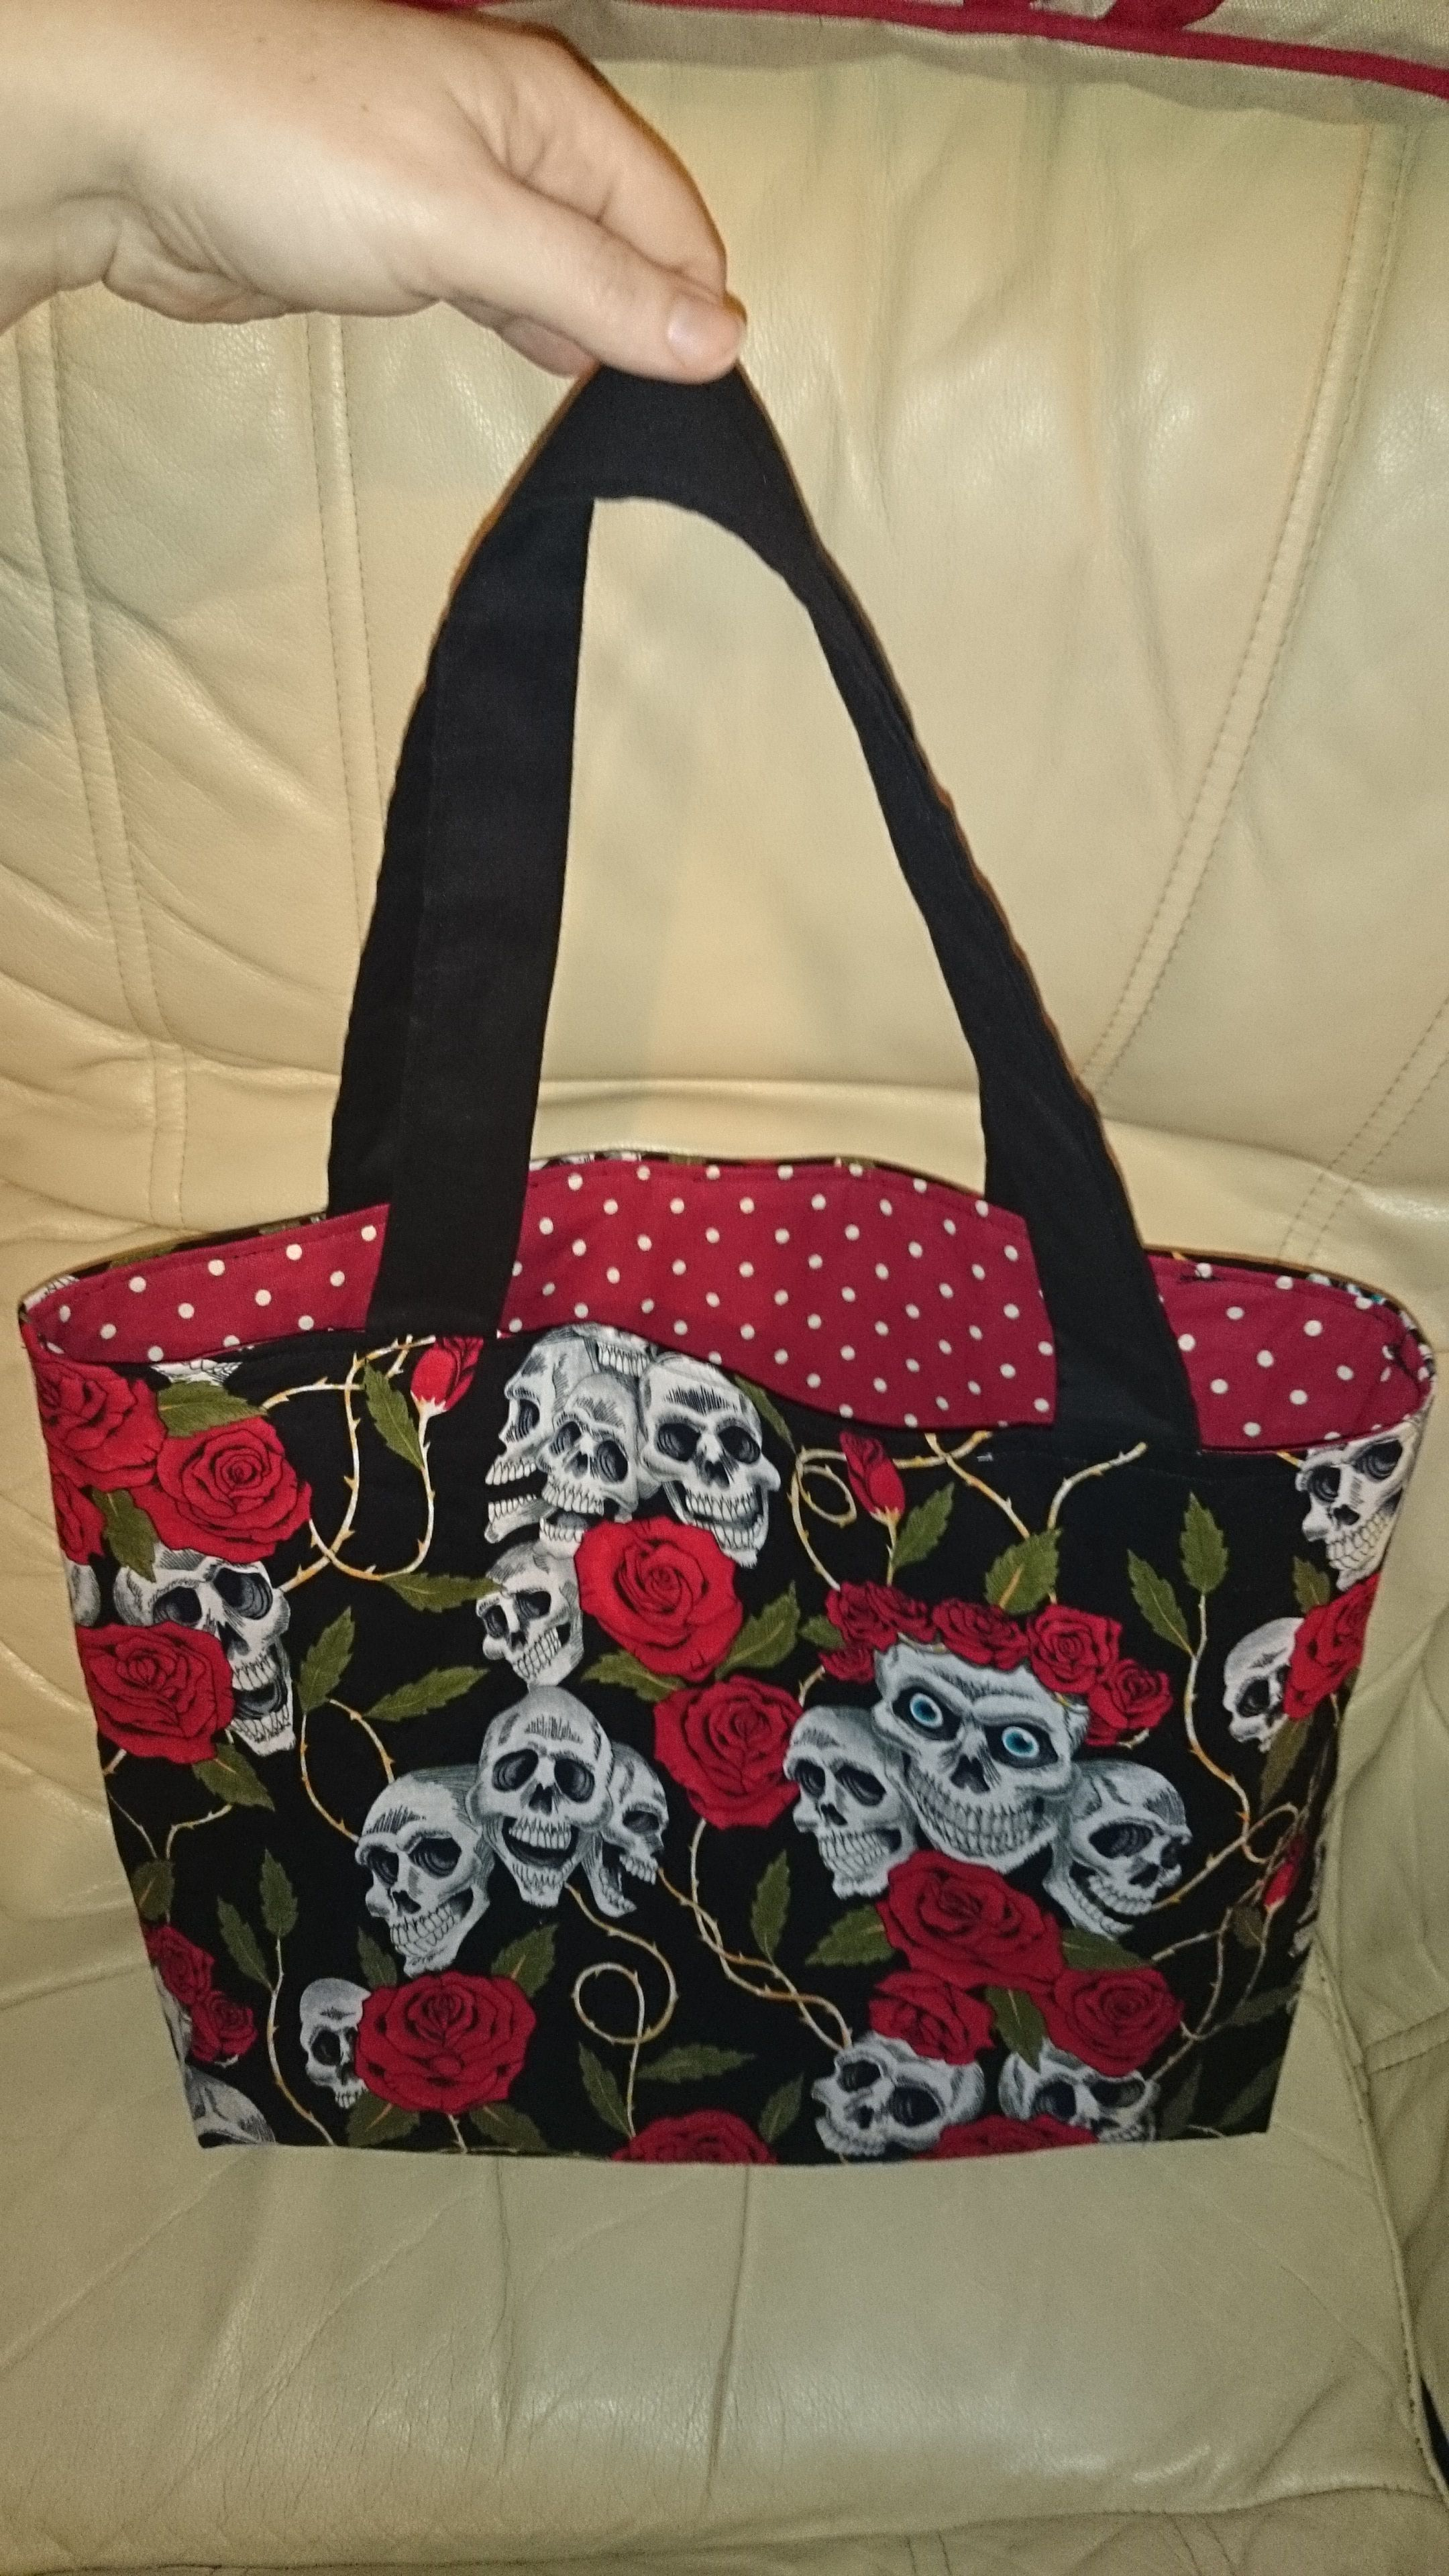 Day of the Day - Red rose & skull fabric with pokadot lining.  Handmade by Mesmerise-Ink - check out our page on facebook! #skull #rose #rockabilly #dayoftheday #handbag #gothic #